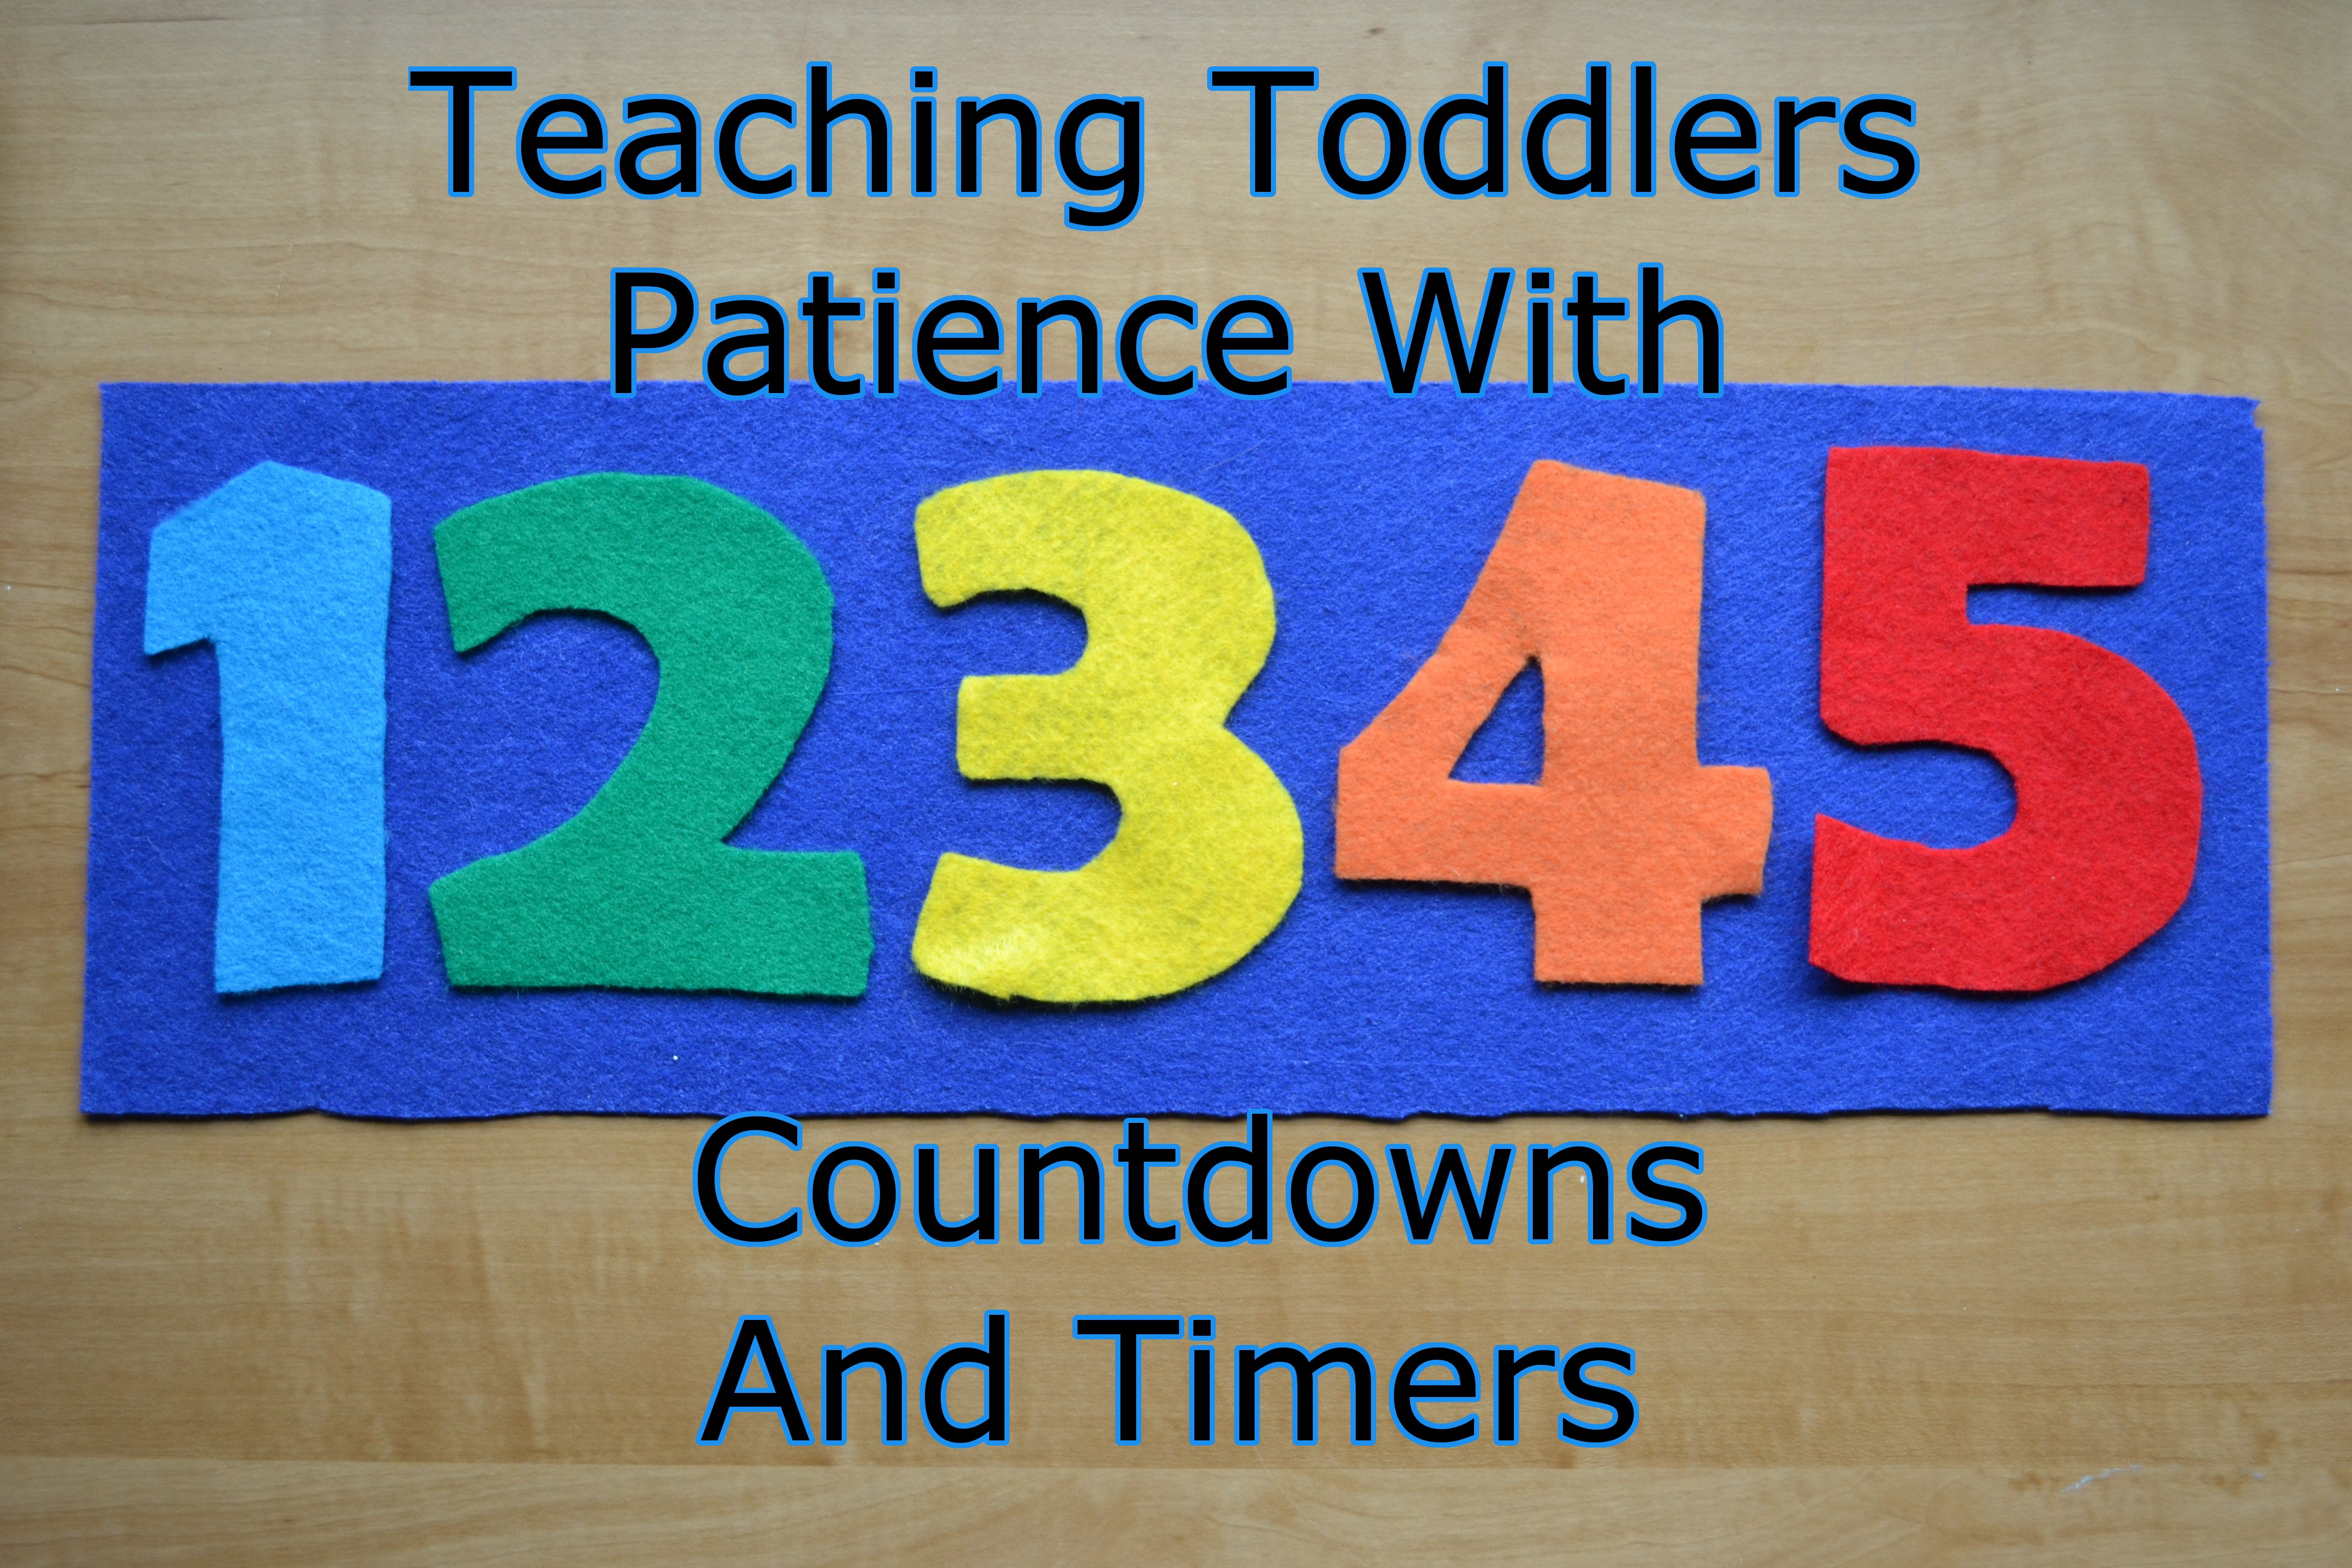 Teaching Toddlers Patience With Timers And Countdowns   The Short Timer Military Countdown